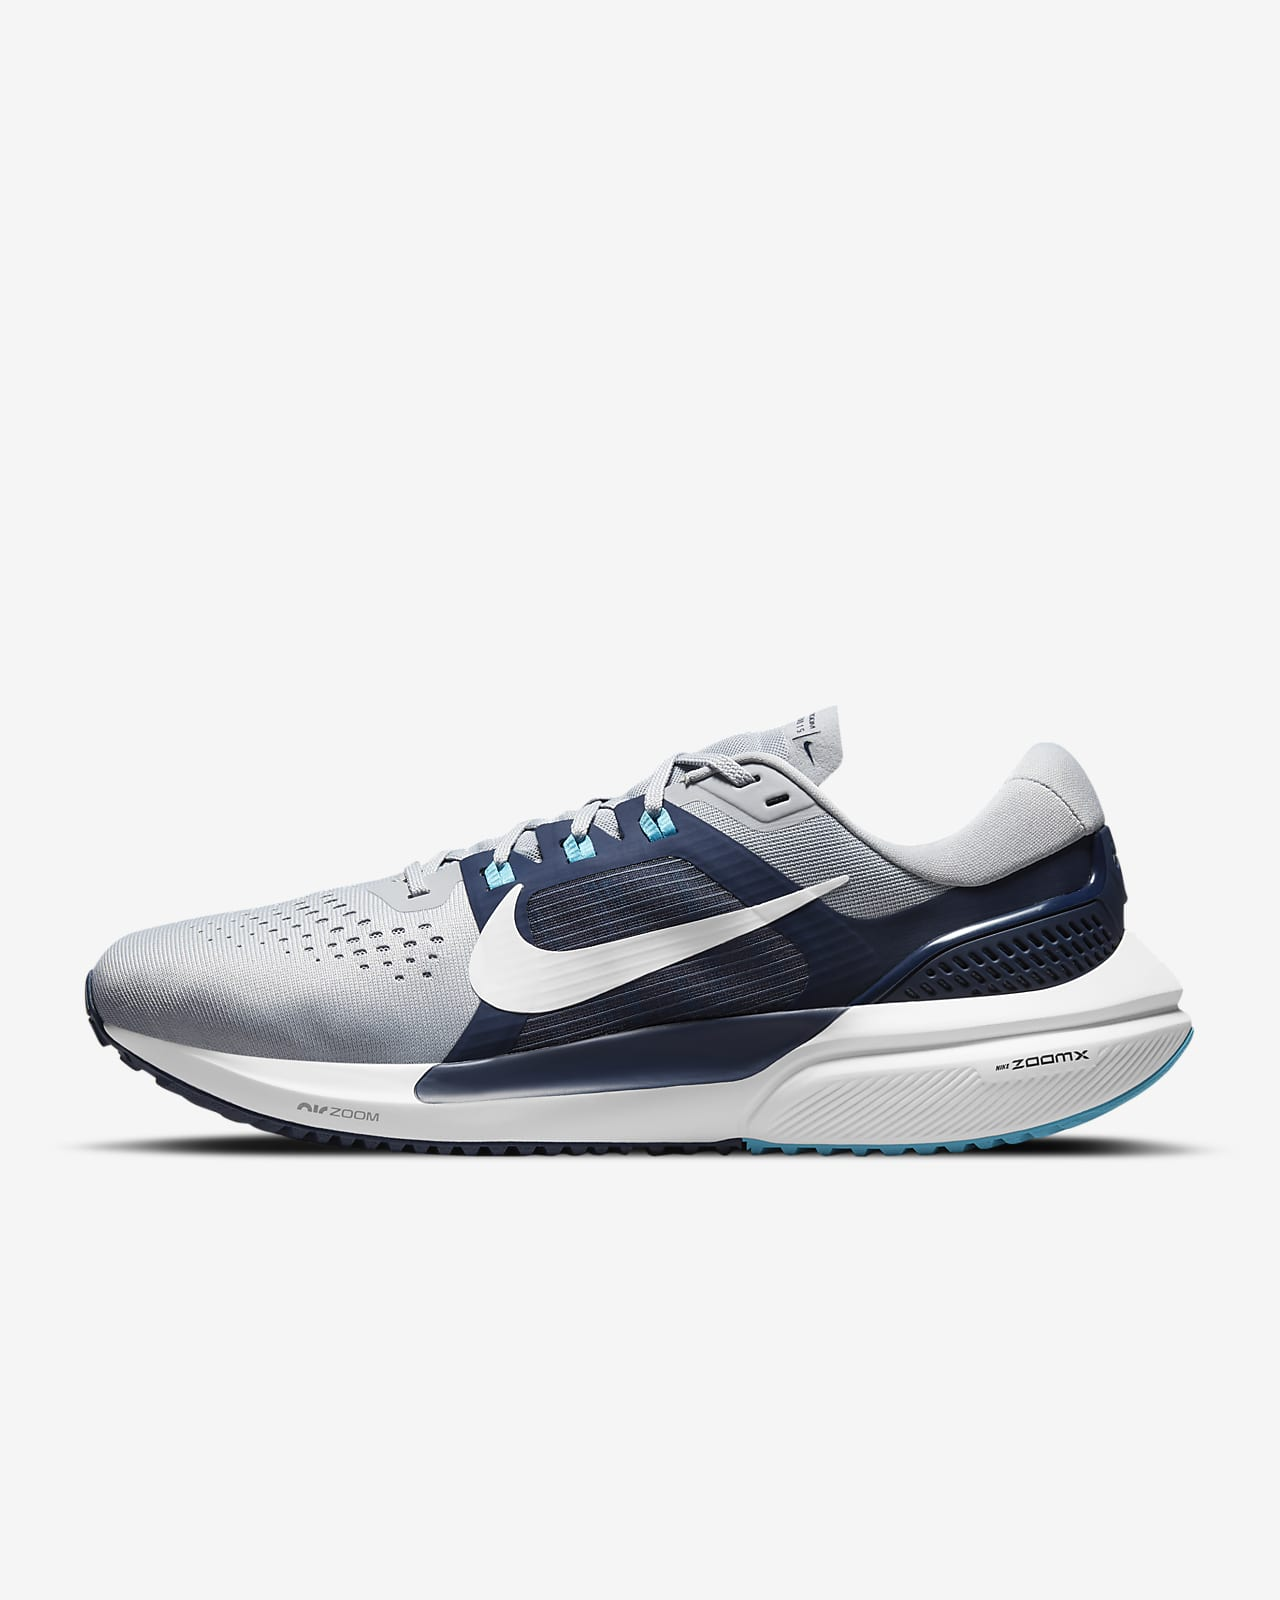 Nike Air Zoom Vomero 15 Men's Running Shoes